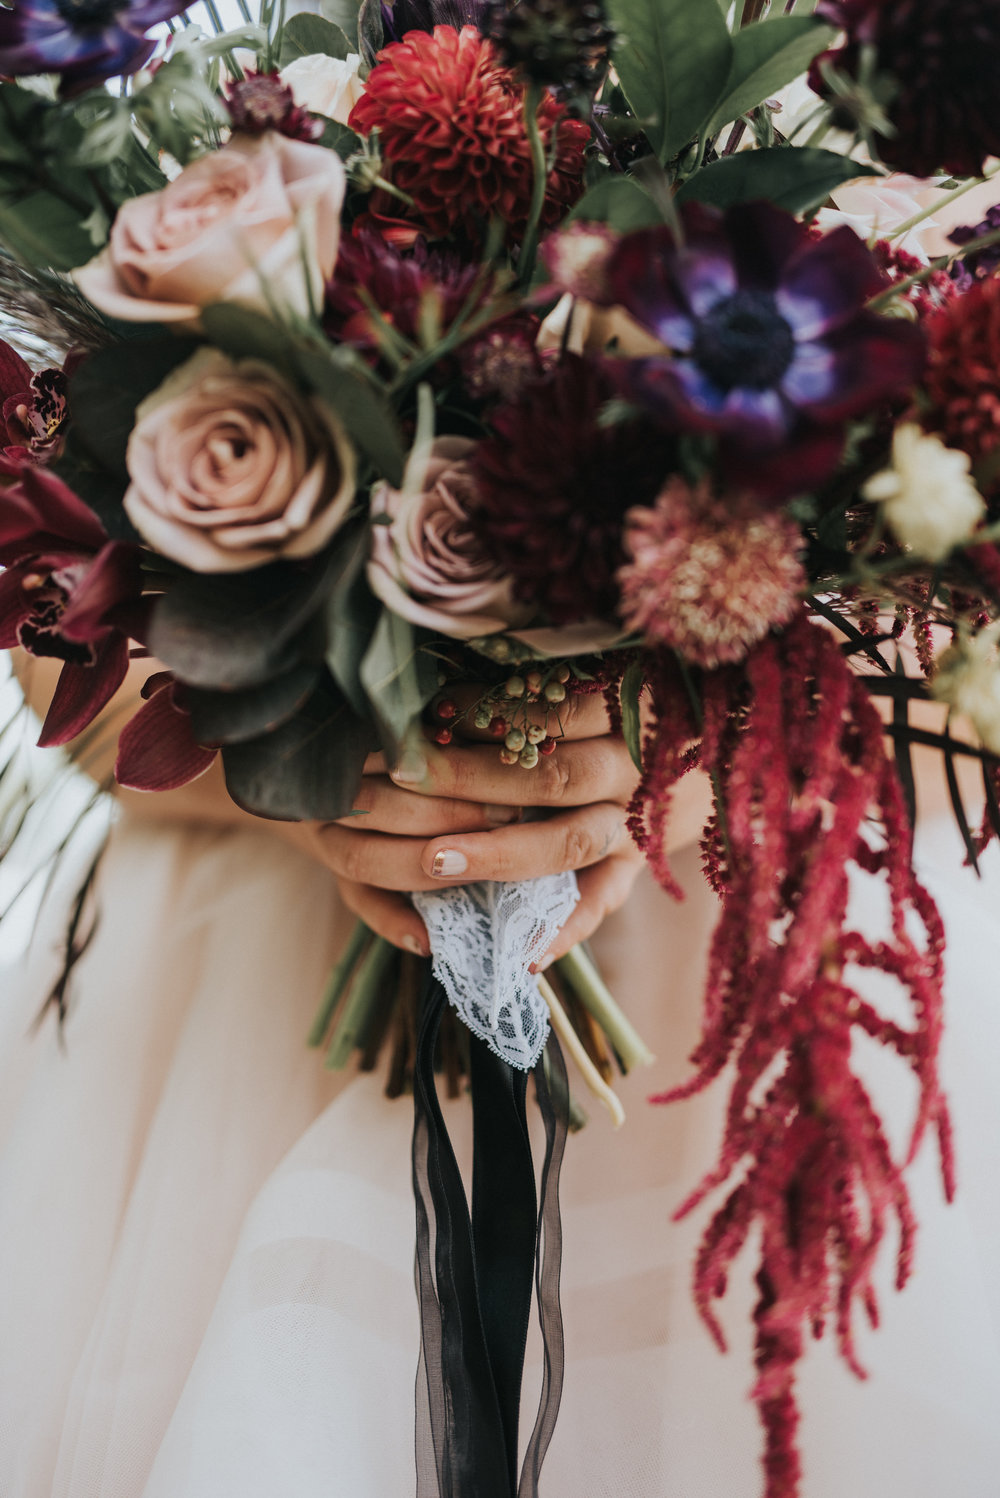 Flowers by Lace and Lilies, boutonniere, wedding flowers, jewel tones, pampas grass, hops, texture, colorado wedding, a-frame arch, arch flowers, altar flowers, ceremony flowers, moody toned wedding, pampas grass, bridal party, burgundy dresses, foliage bouquets, bouquet wrap, something blue